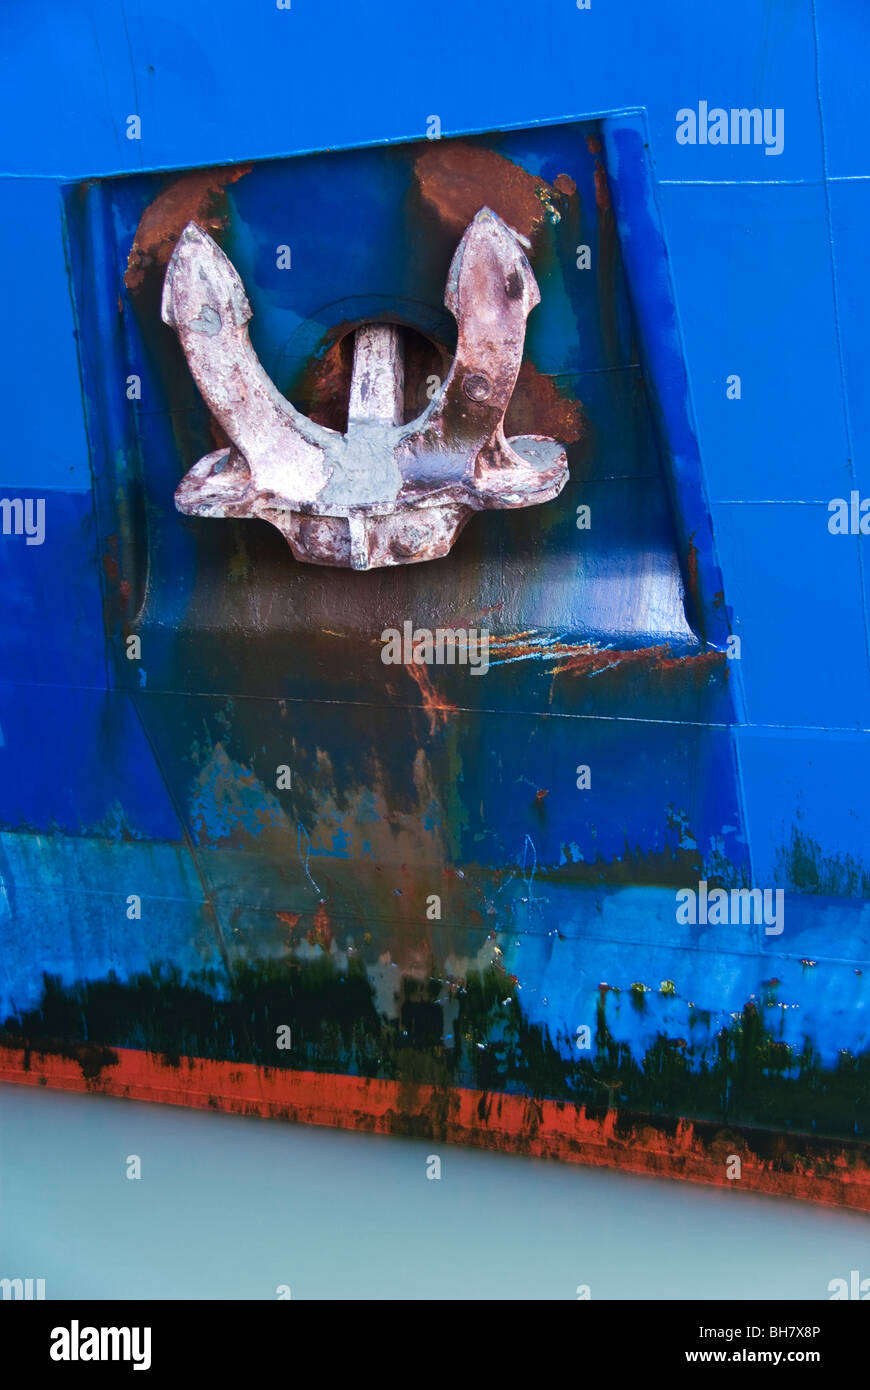 A close - up view of a ship's anchor housed in it's hawse pipe recessed in the hull. - Stock Image